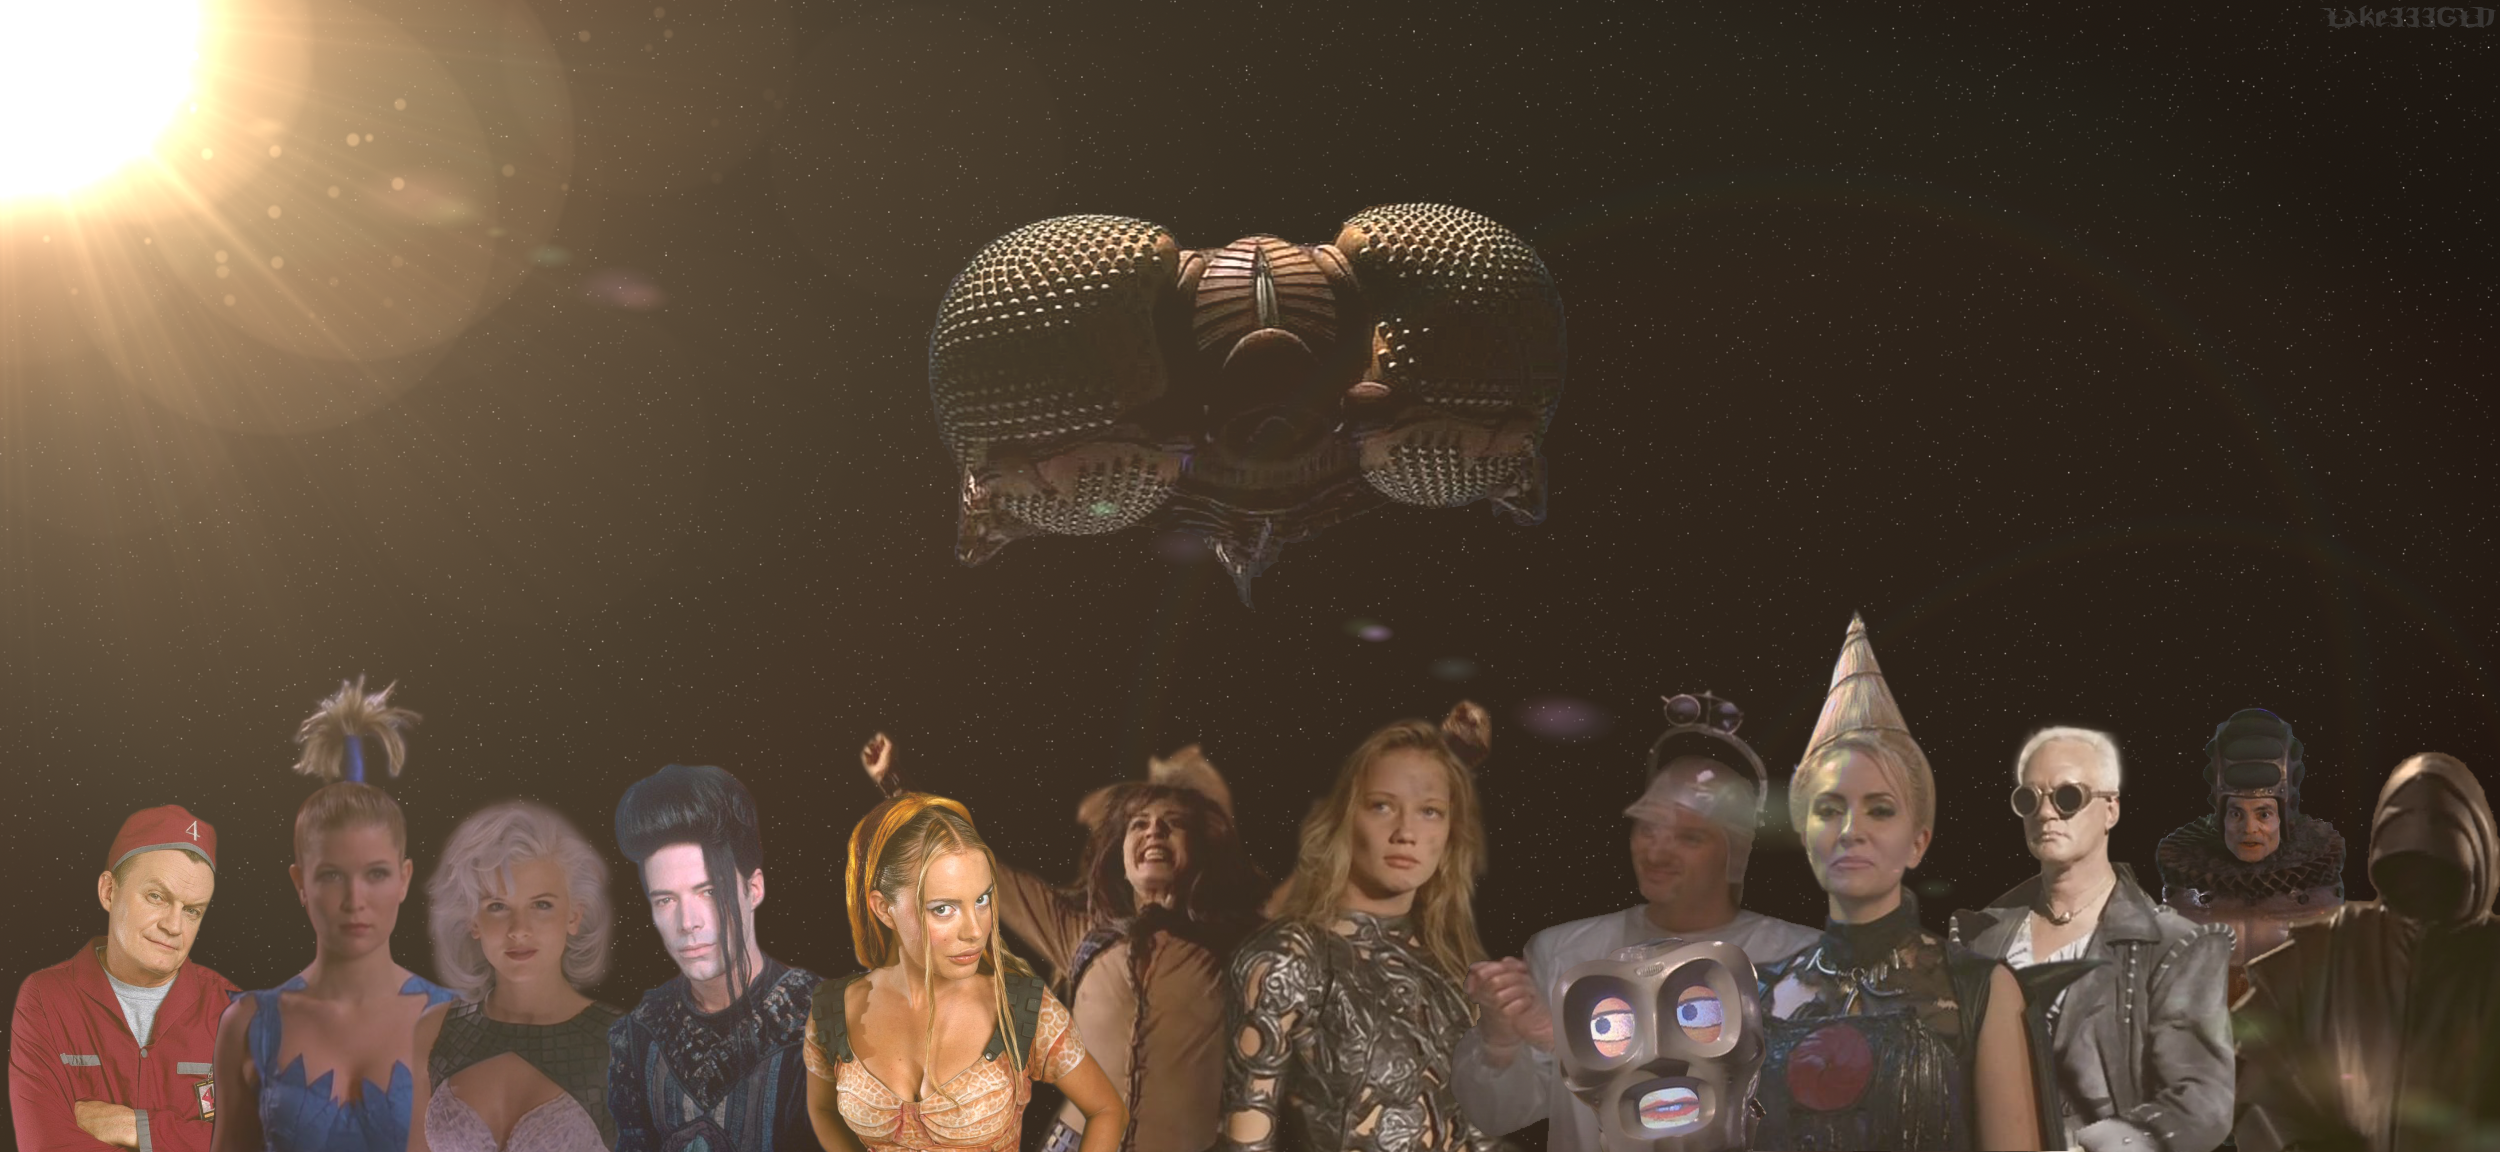 Heroes of the LEXX (Hi Res - 2500x1152) 300dpi by Lake333GLD